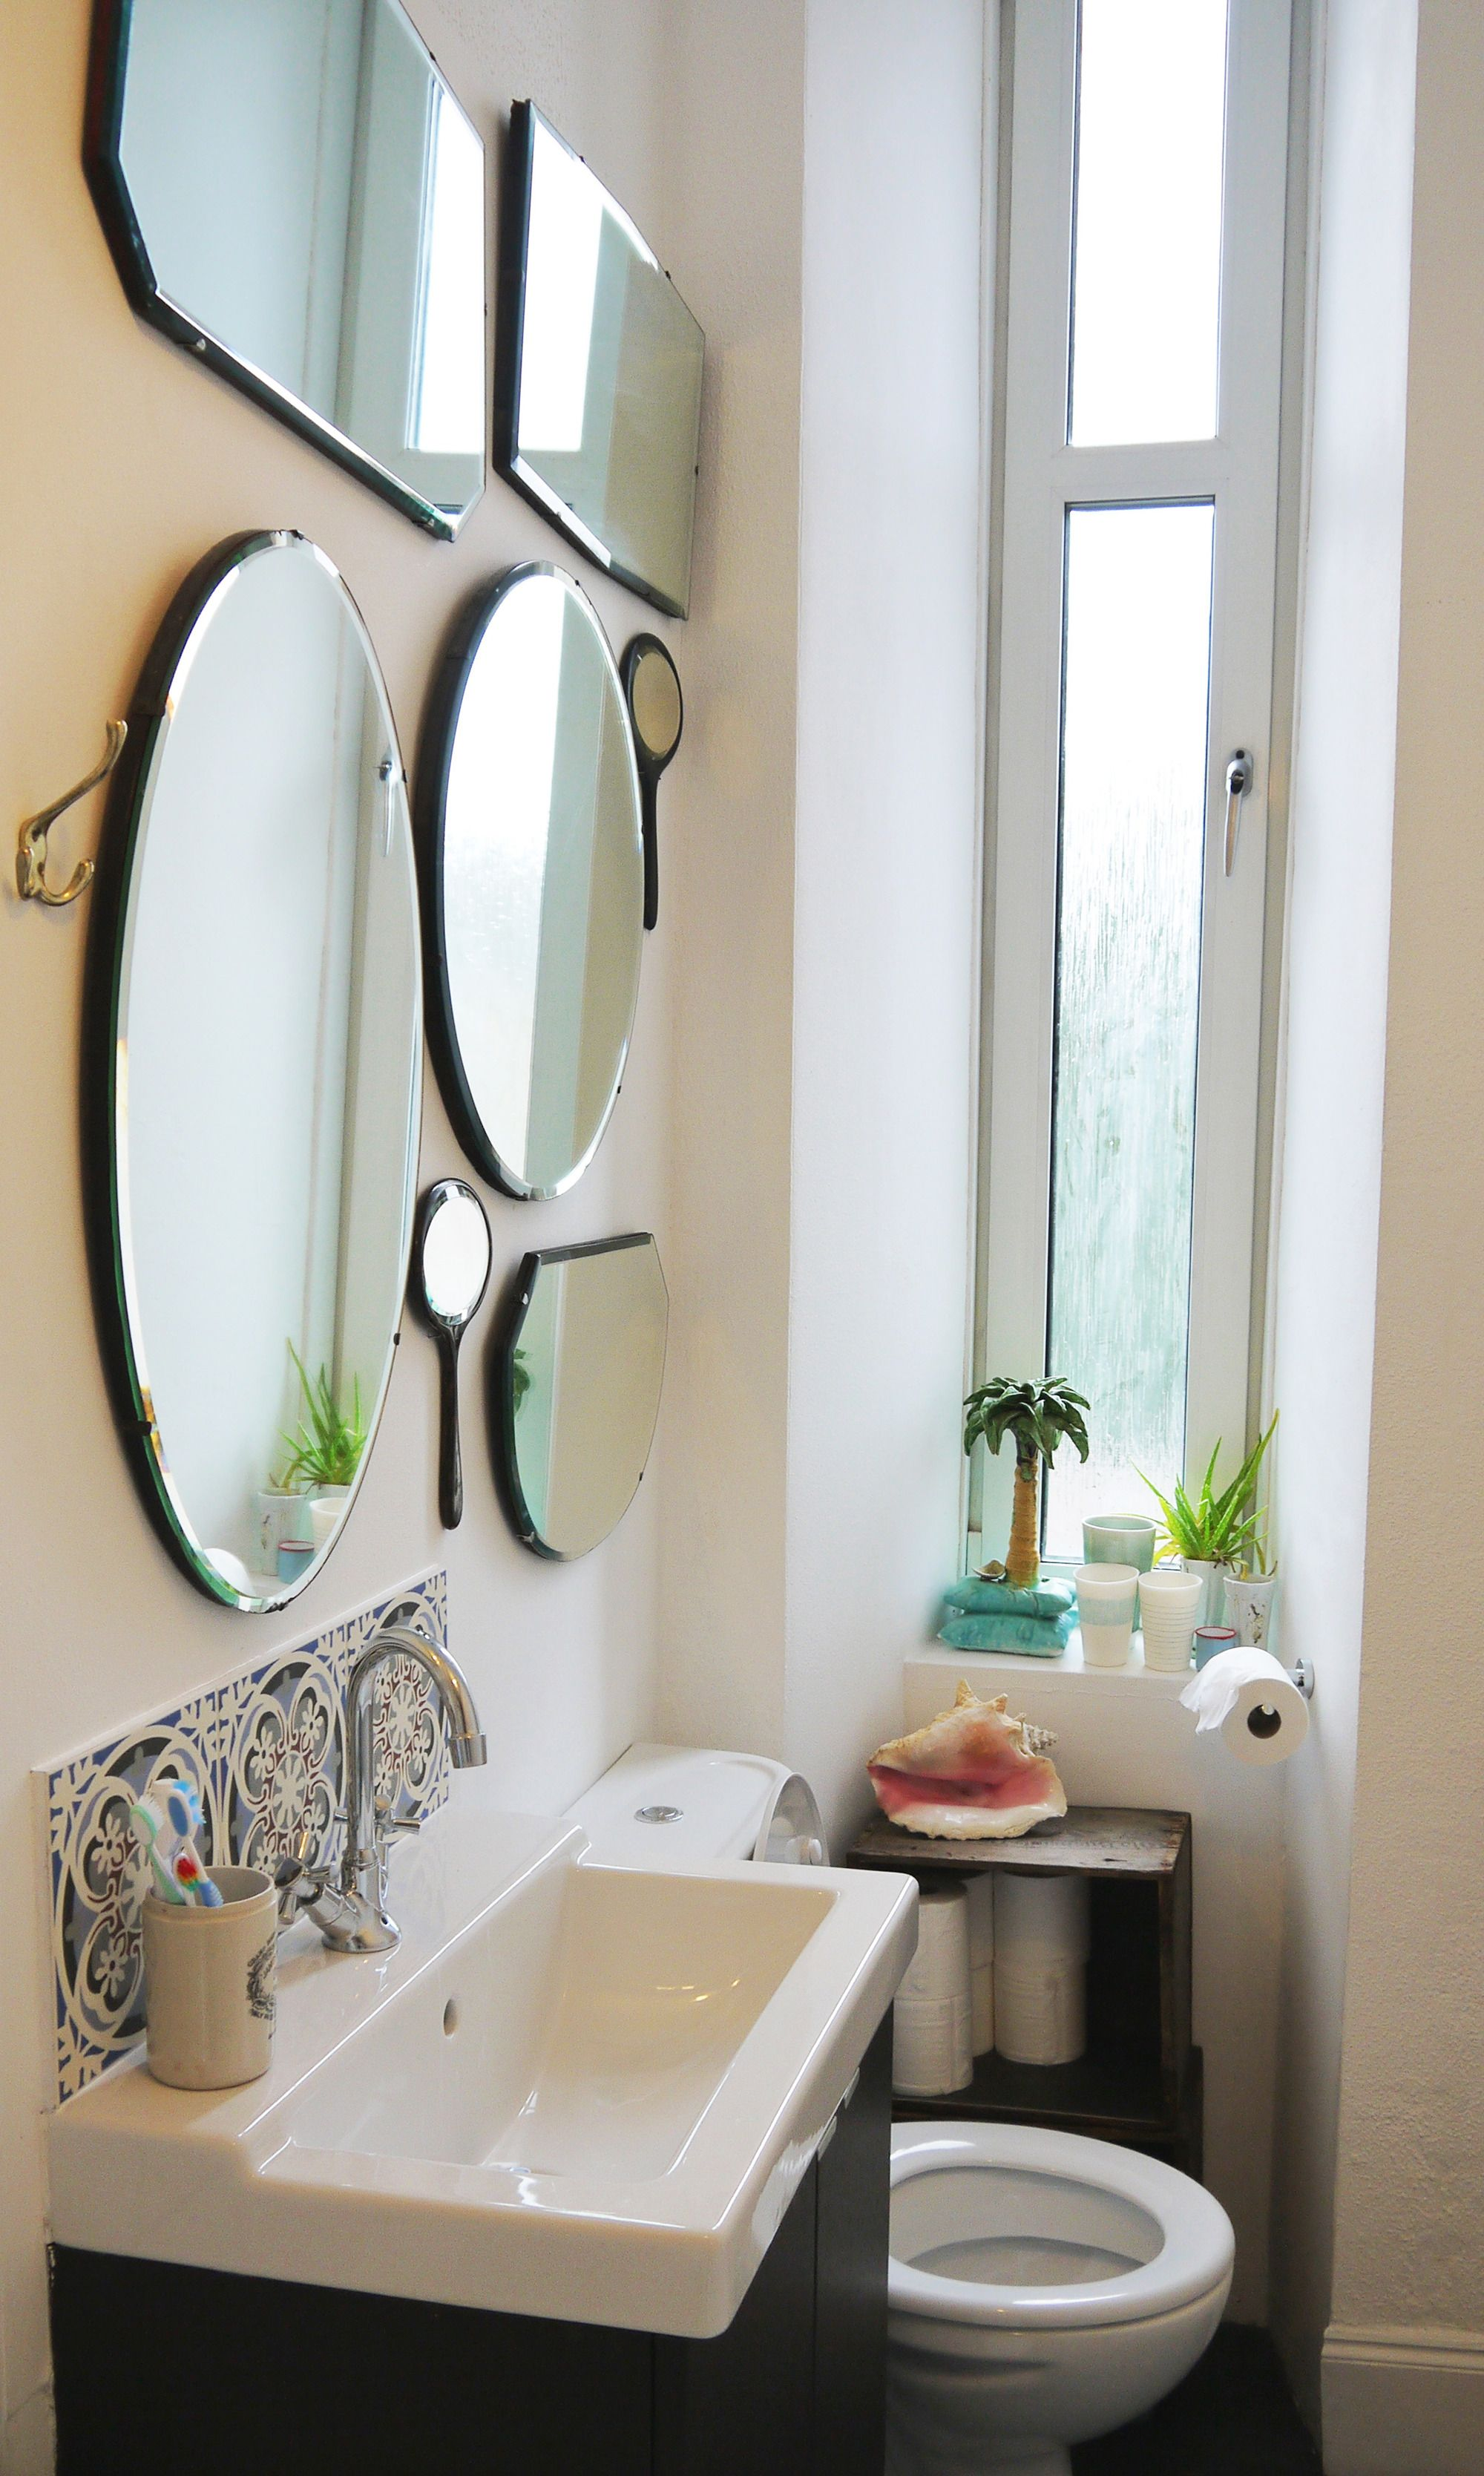 Banish Boring: 10 Unexpected & Unusual Bathroom Details to Steal ...